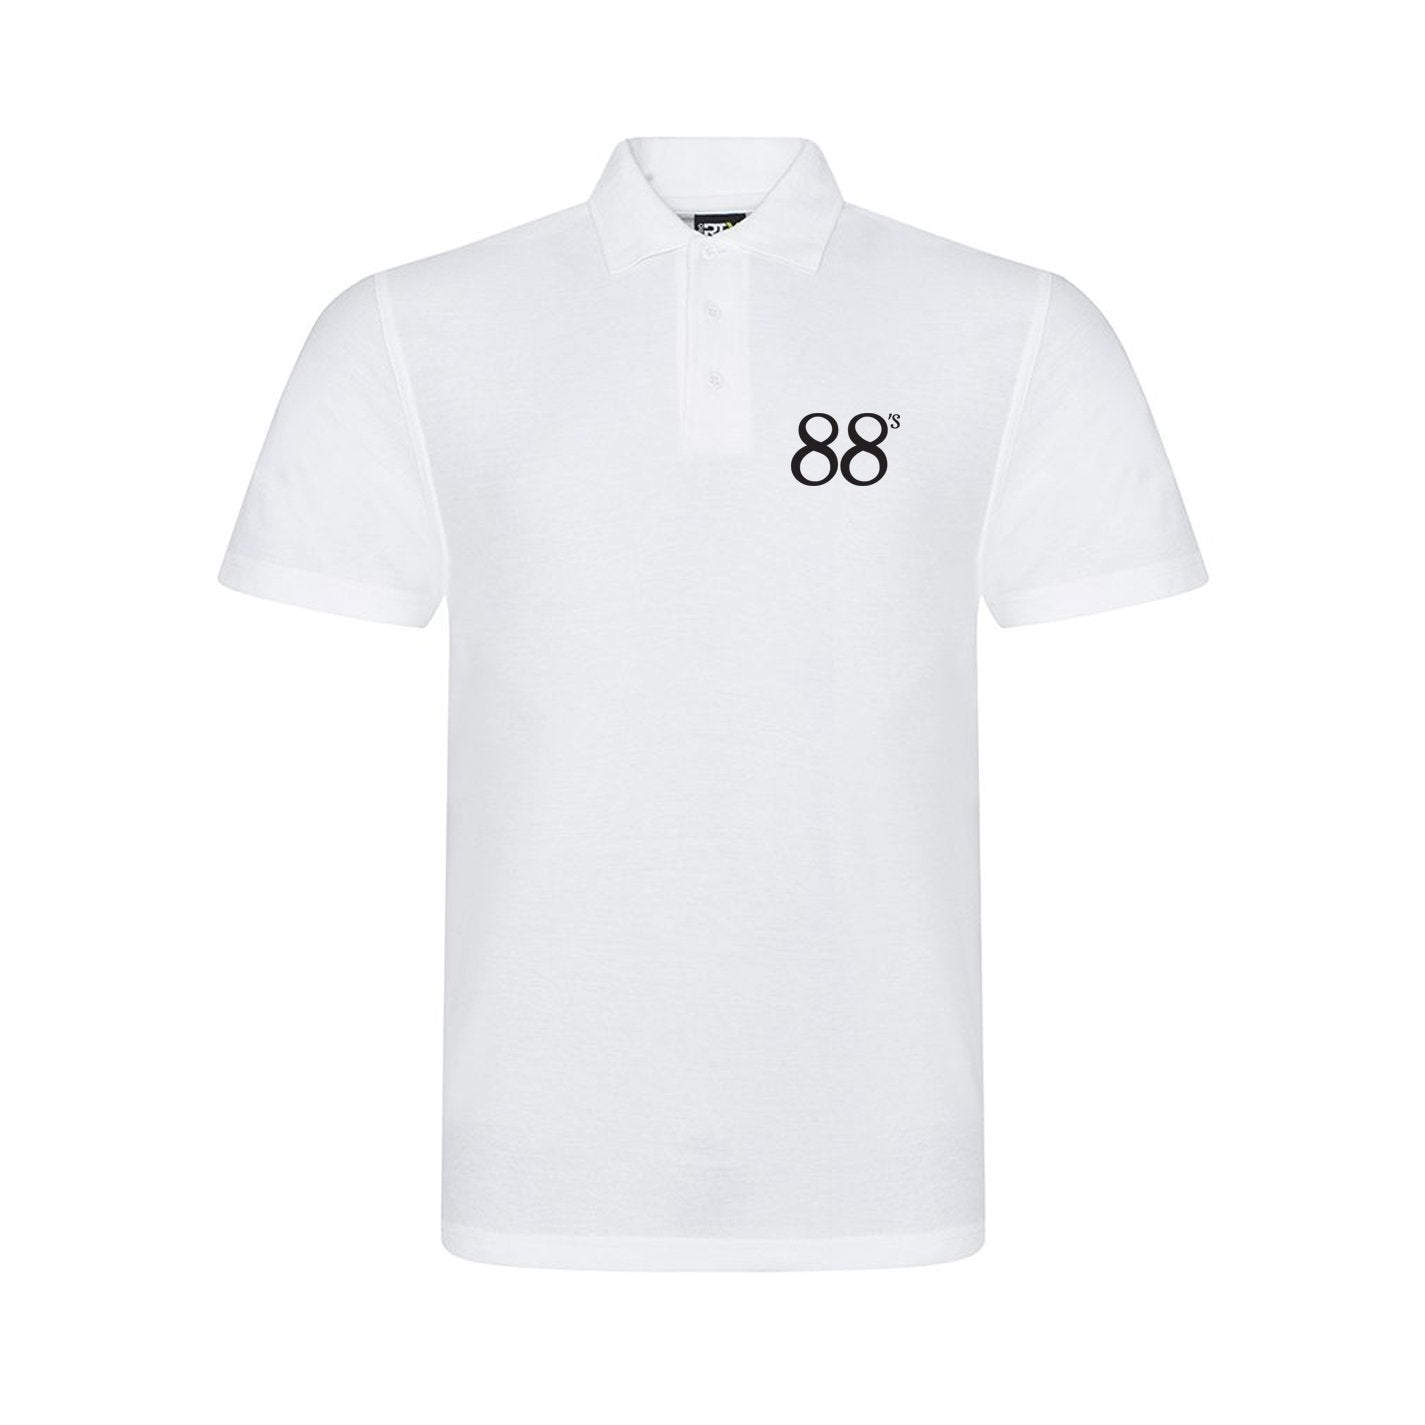 Southwest 88's - Polo (White) Southwest 88's